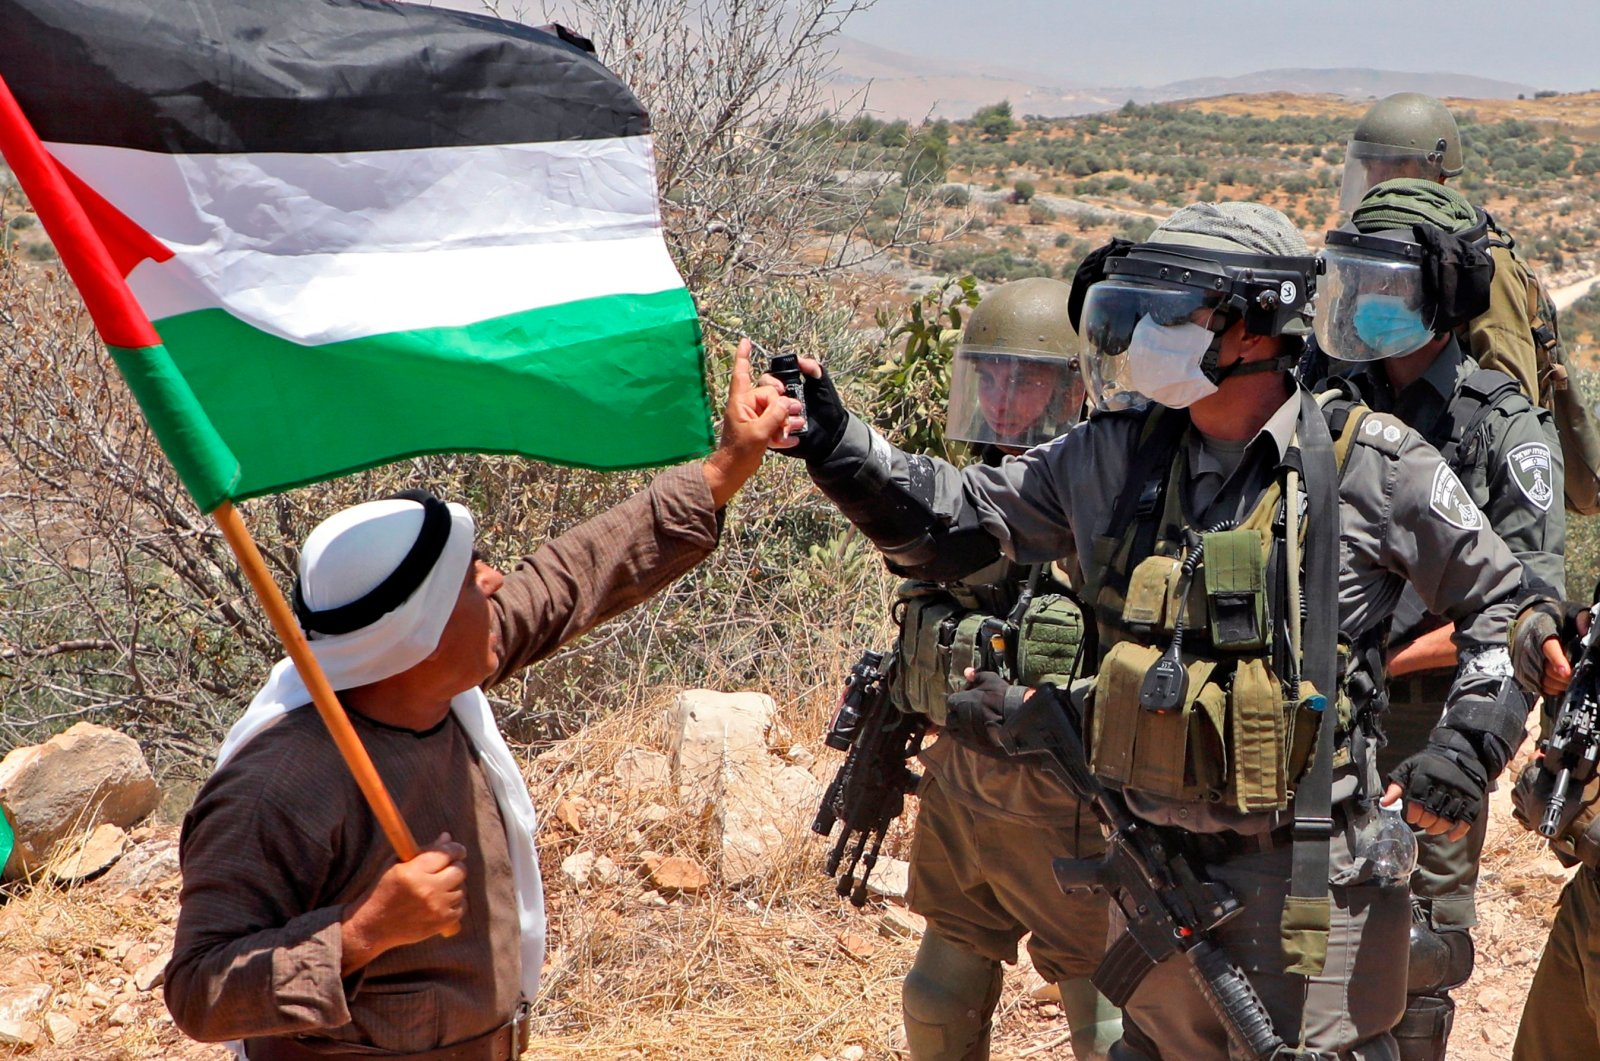 A Palestinian demonstrator confronts an Israeli border guard during a protest against Jewish settlements and Israel's planned annexation of parts of the Israeli-occupied West Bank, in the town of Asira Shamaliya near the West Bank city of Nablus on July 17, 2020. (AFP Photo)